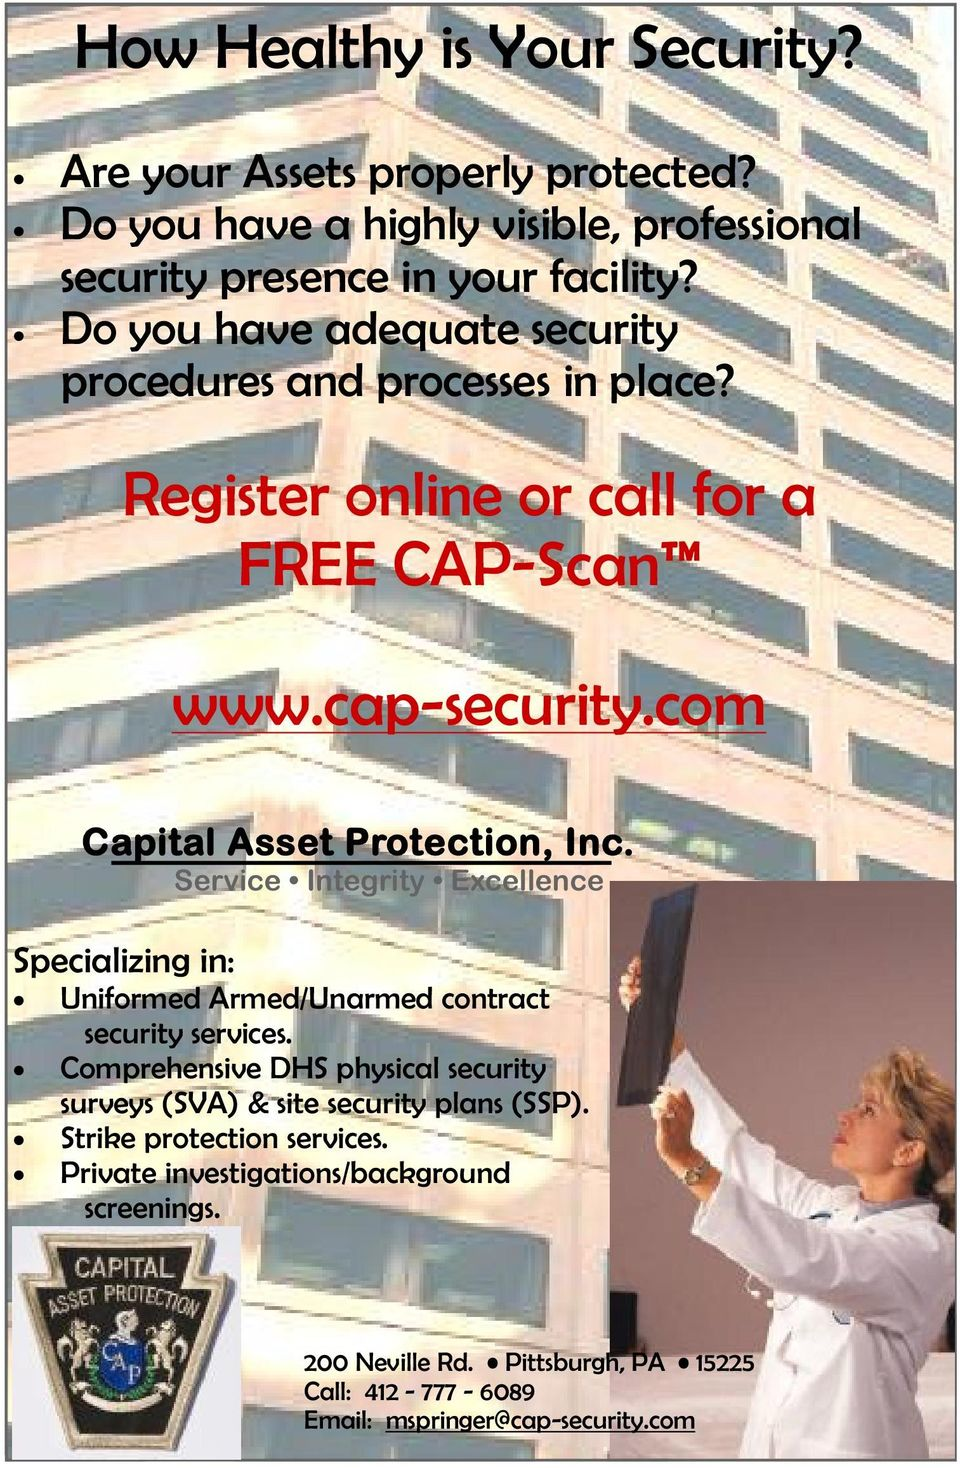 Service Integrity Excellence Specializing in: Uniformed Armed/Unarmed contract security services.